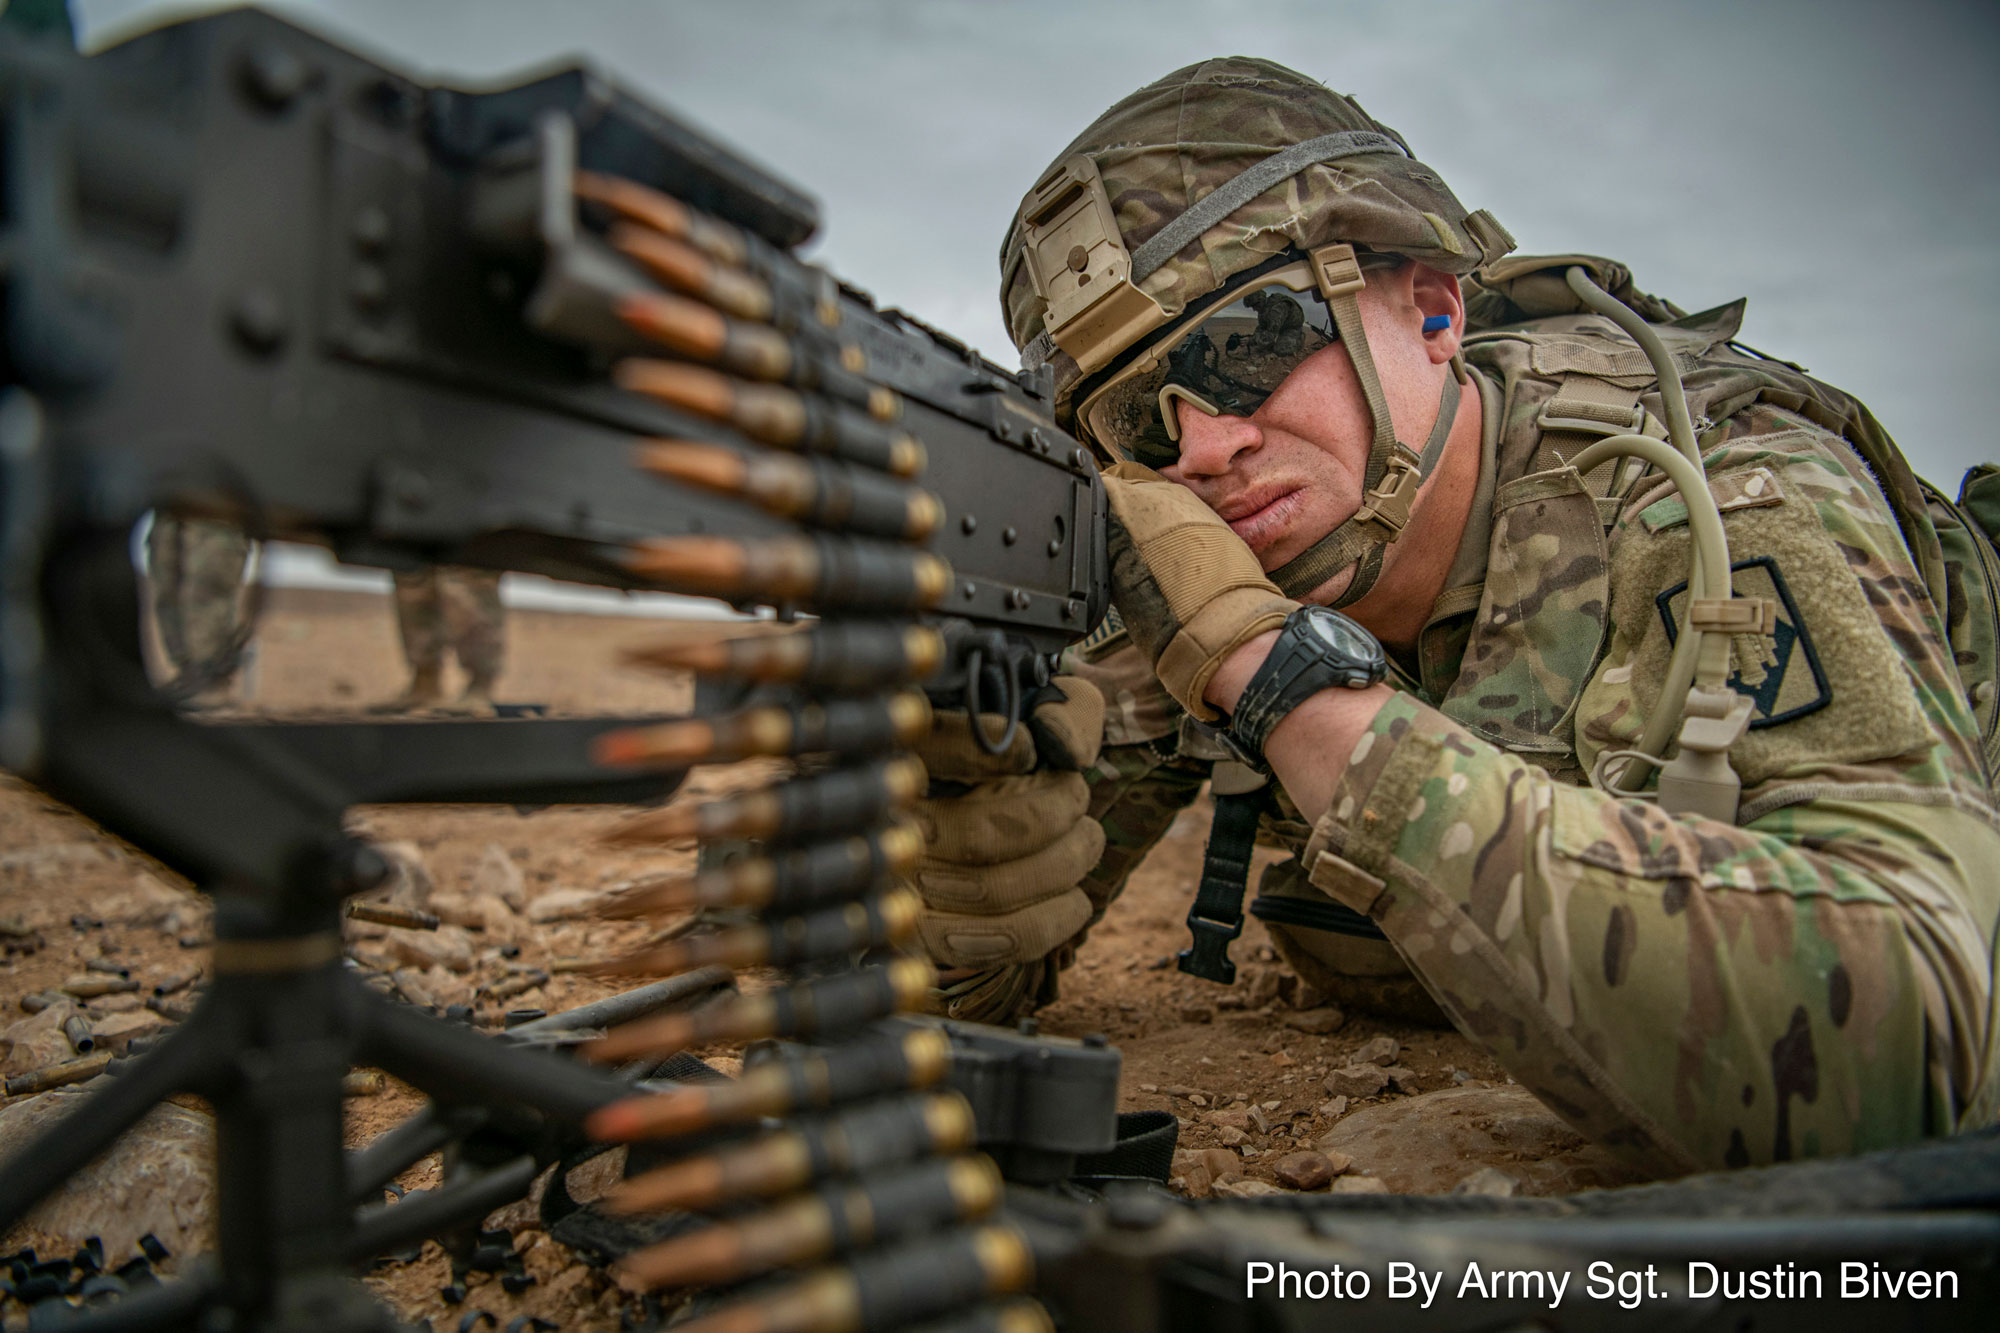 1-Photo-By-Army-Sgt.-Dustin-Biven-2.jpg